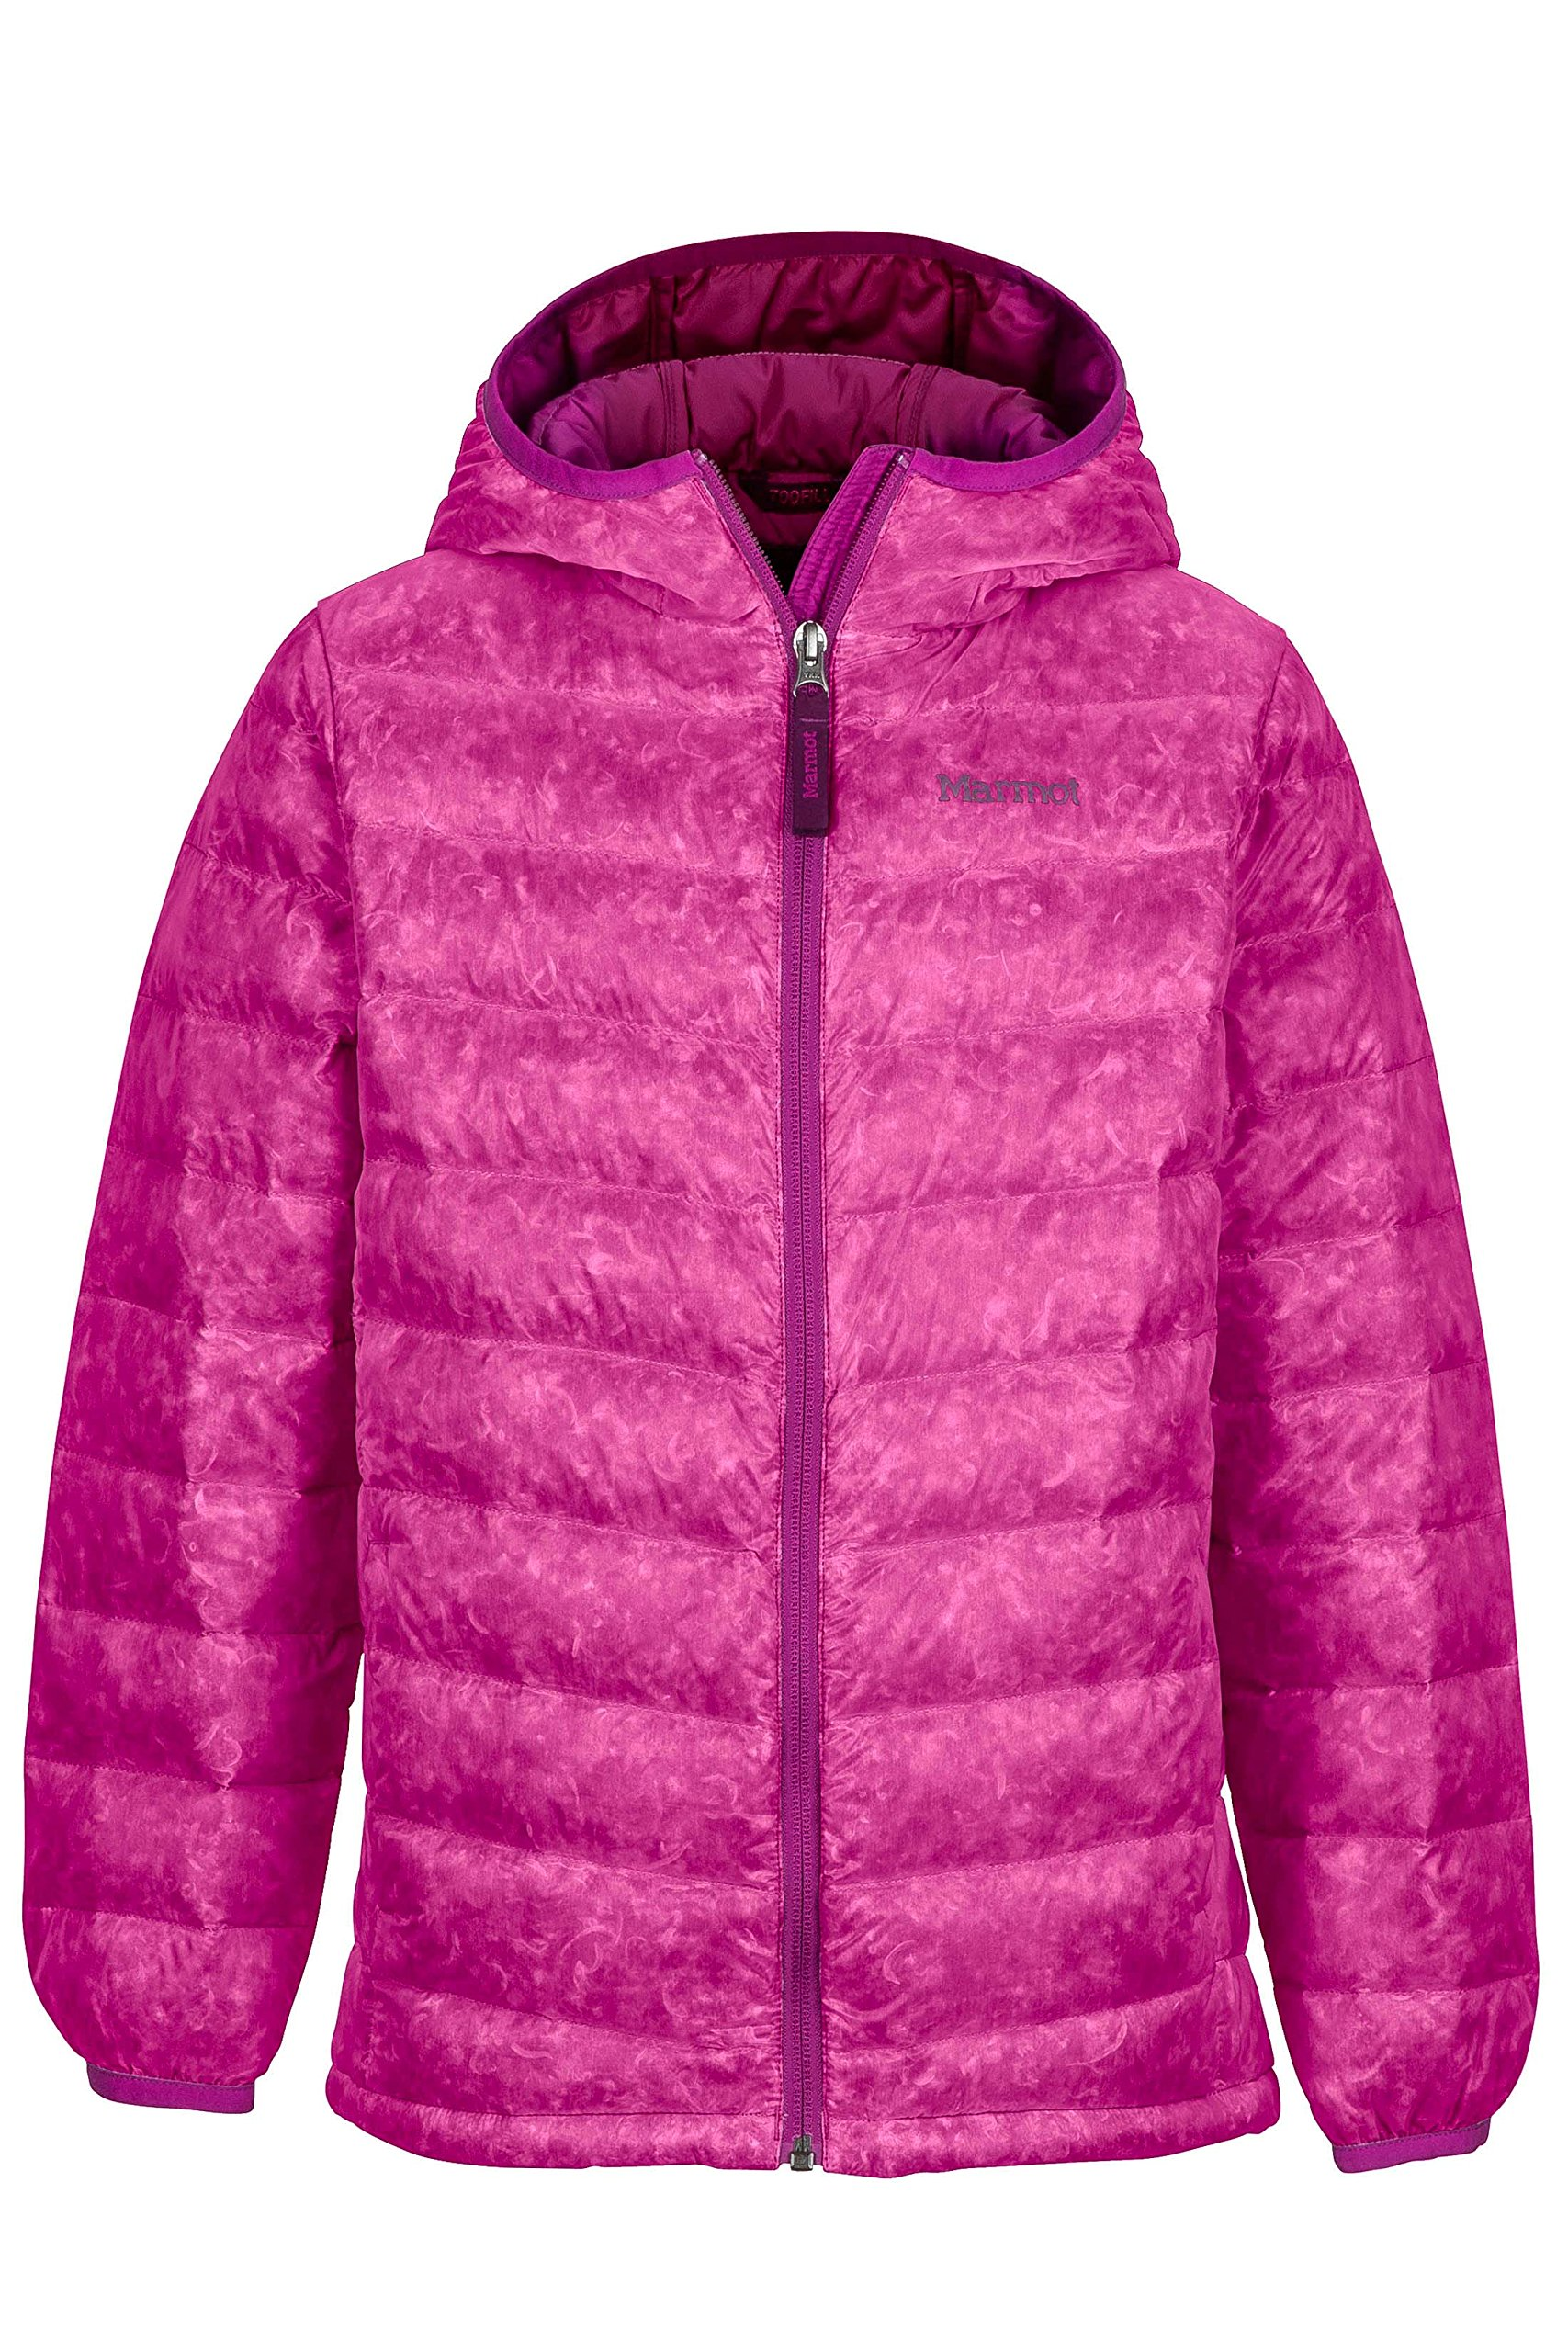 Marmot Nika Girls' Down Puffer Jacket, Fill Power 550, Purple Orchid, Small